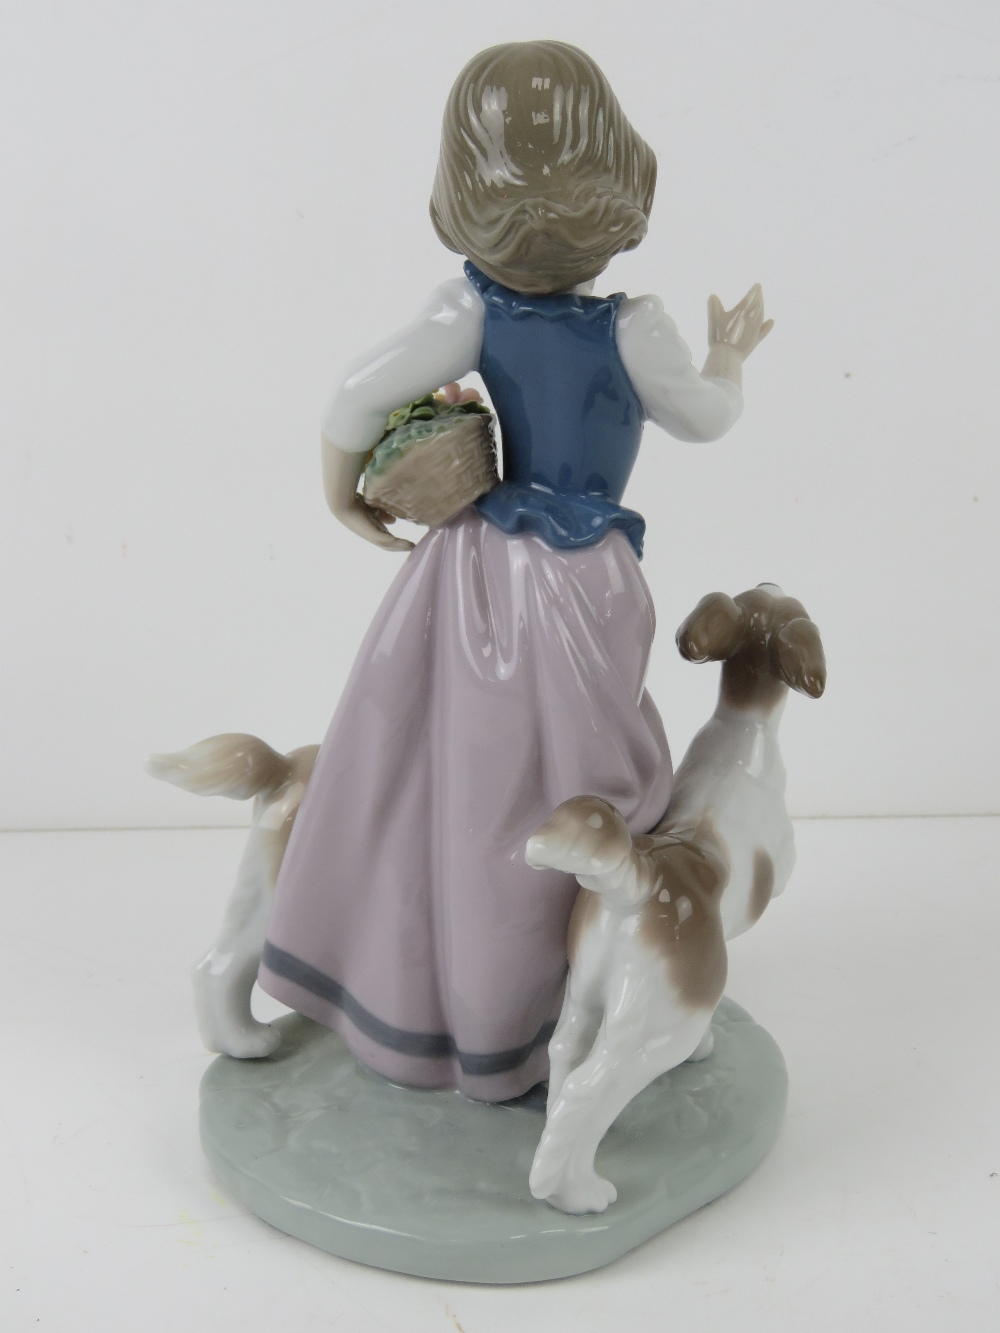 Lladro figurine 5761 'Out For A Romp' a girl with two dogs and a basket of flowers under her arm, - Image 3 of 5